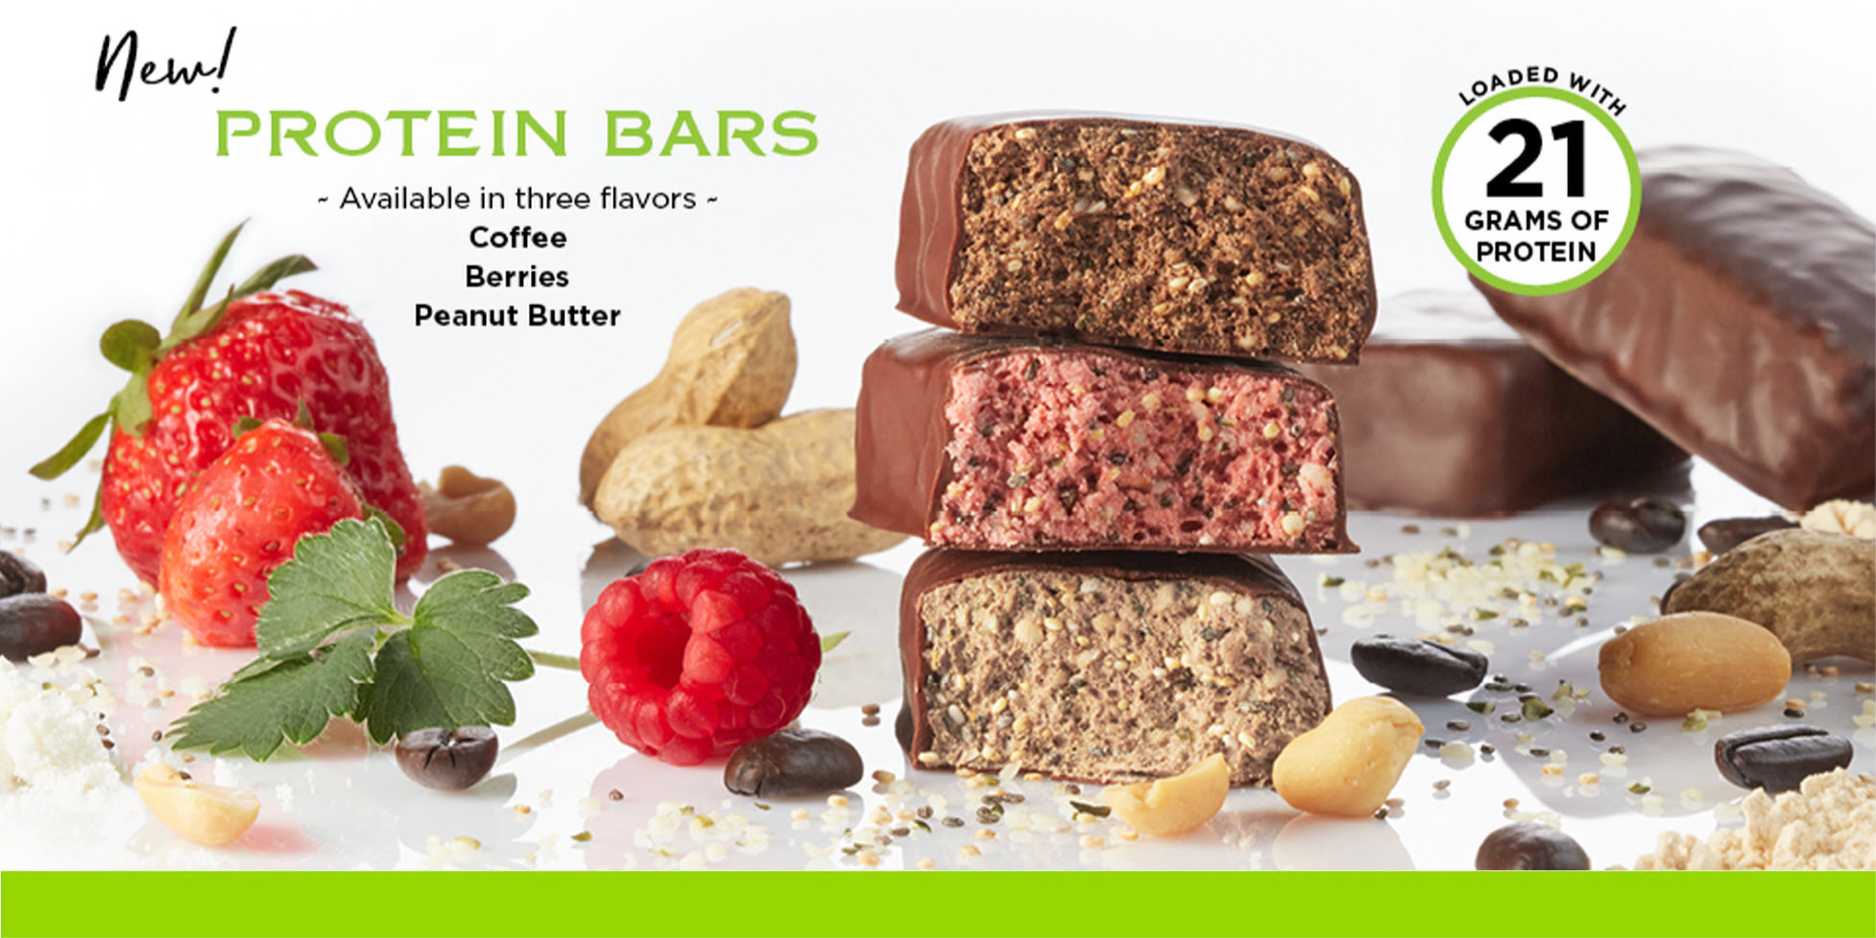 Protein Bars - Available in three flavors!